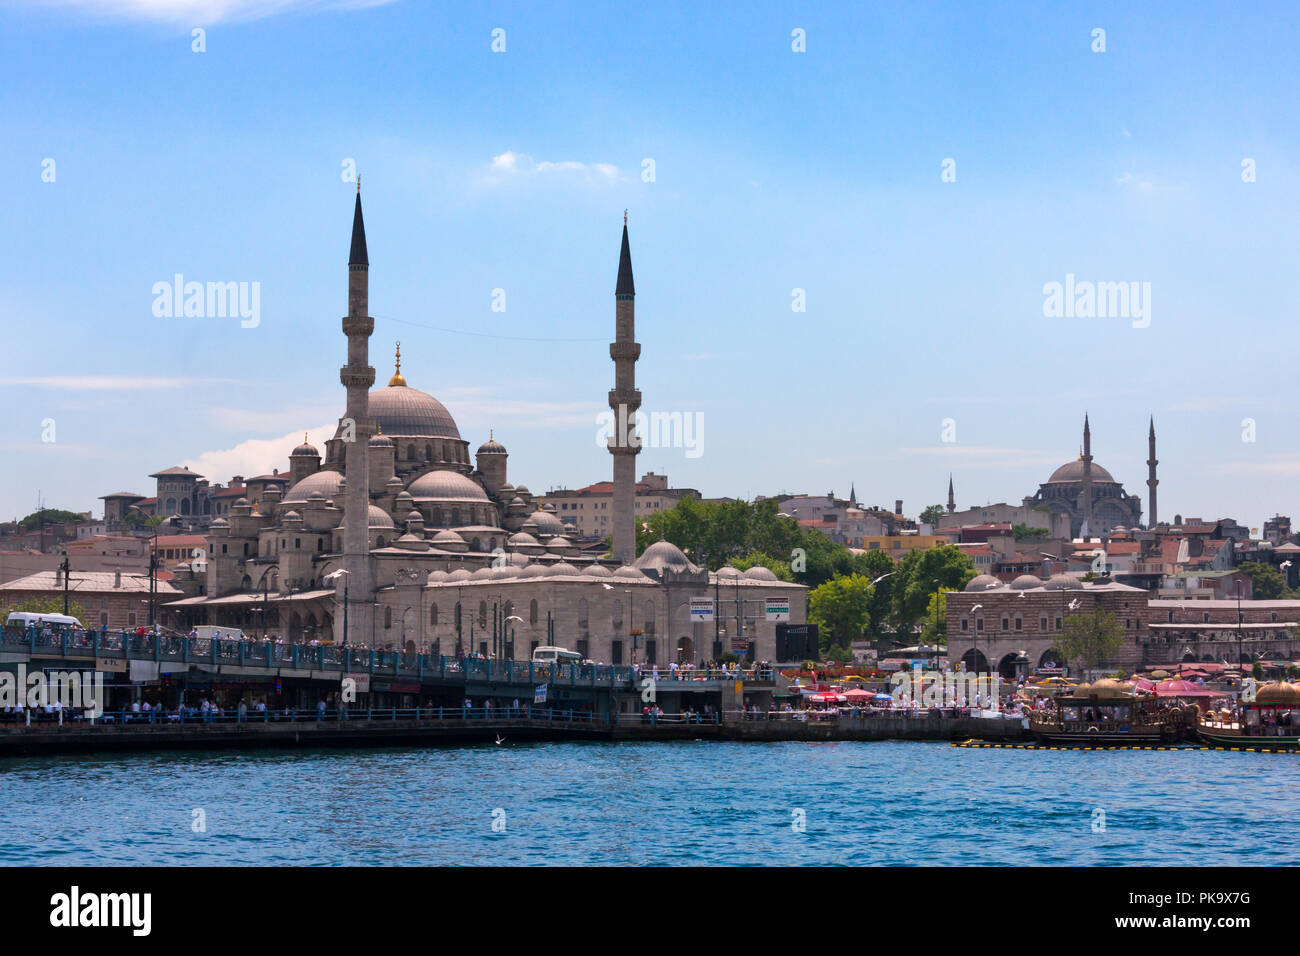 Yeni Cami (New Mosque) and other buildings along the waterfront, Golden Horn, Istanbul, Turkey - Stock Image